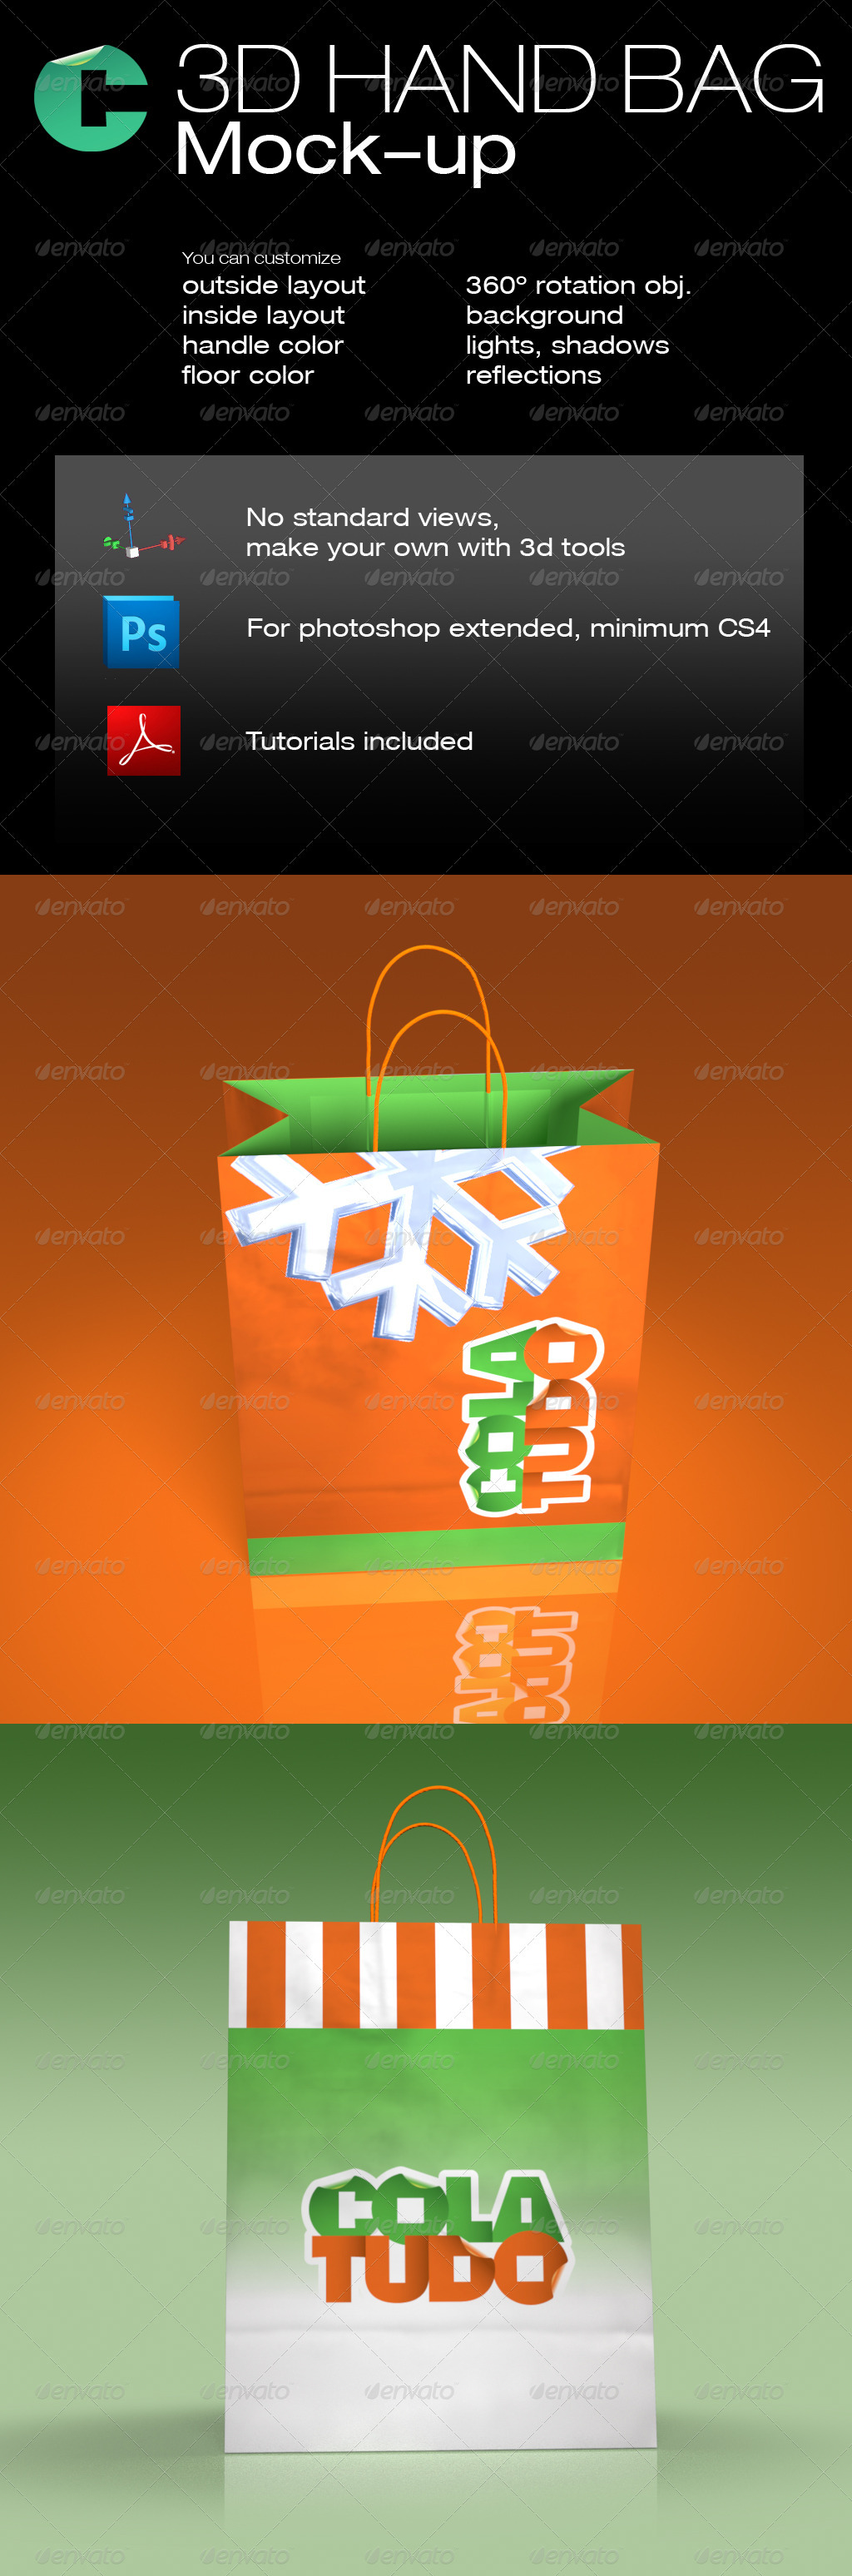 3d object 03 shopping bag mock up graphicriver this product is 3d object 03 shopping bag mock up graphicriver this product is compatible with adobe photoshop cs4 extended and cs5 extended with th pinteres baditri Images